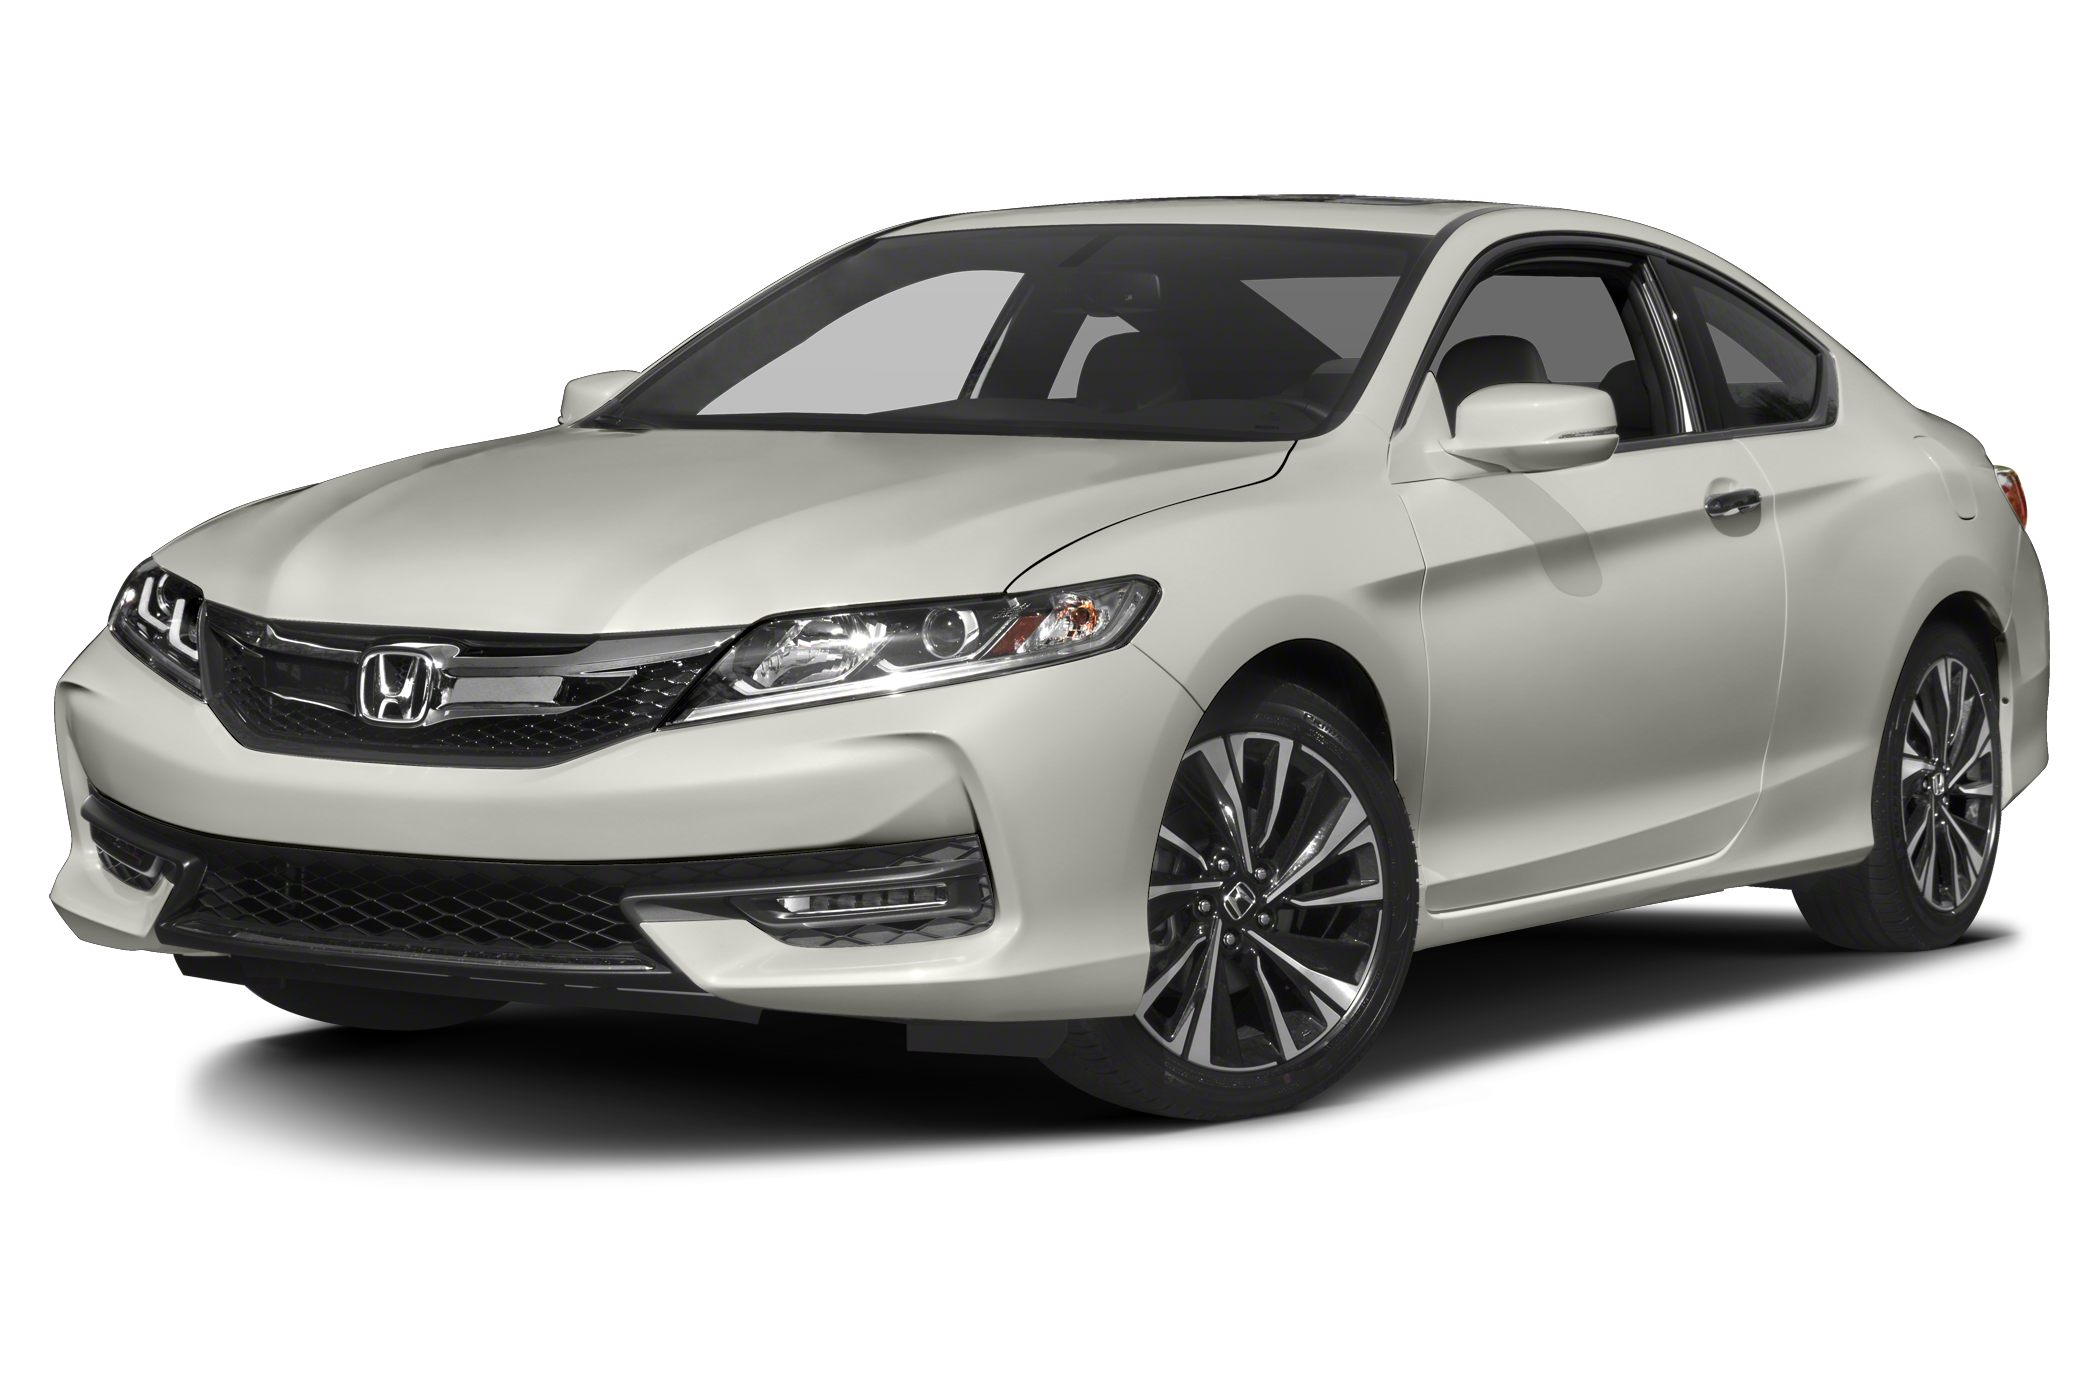 2017 Honda Accord EX-L V6 2dr Coupe